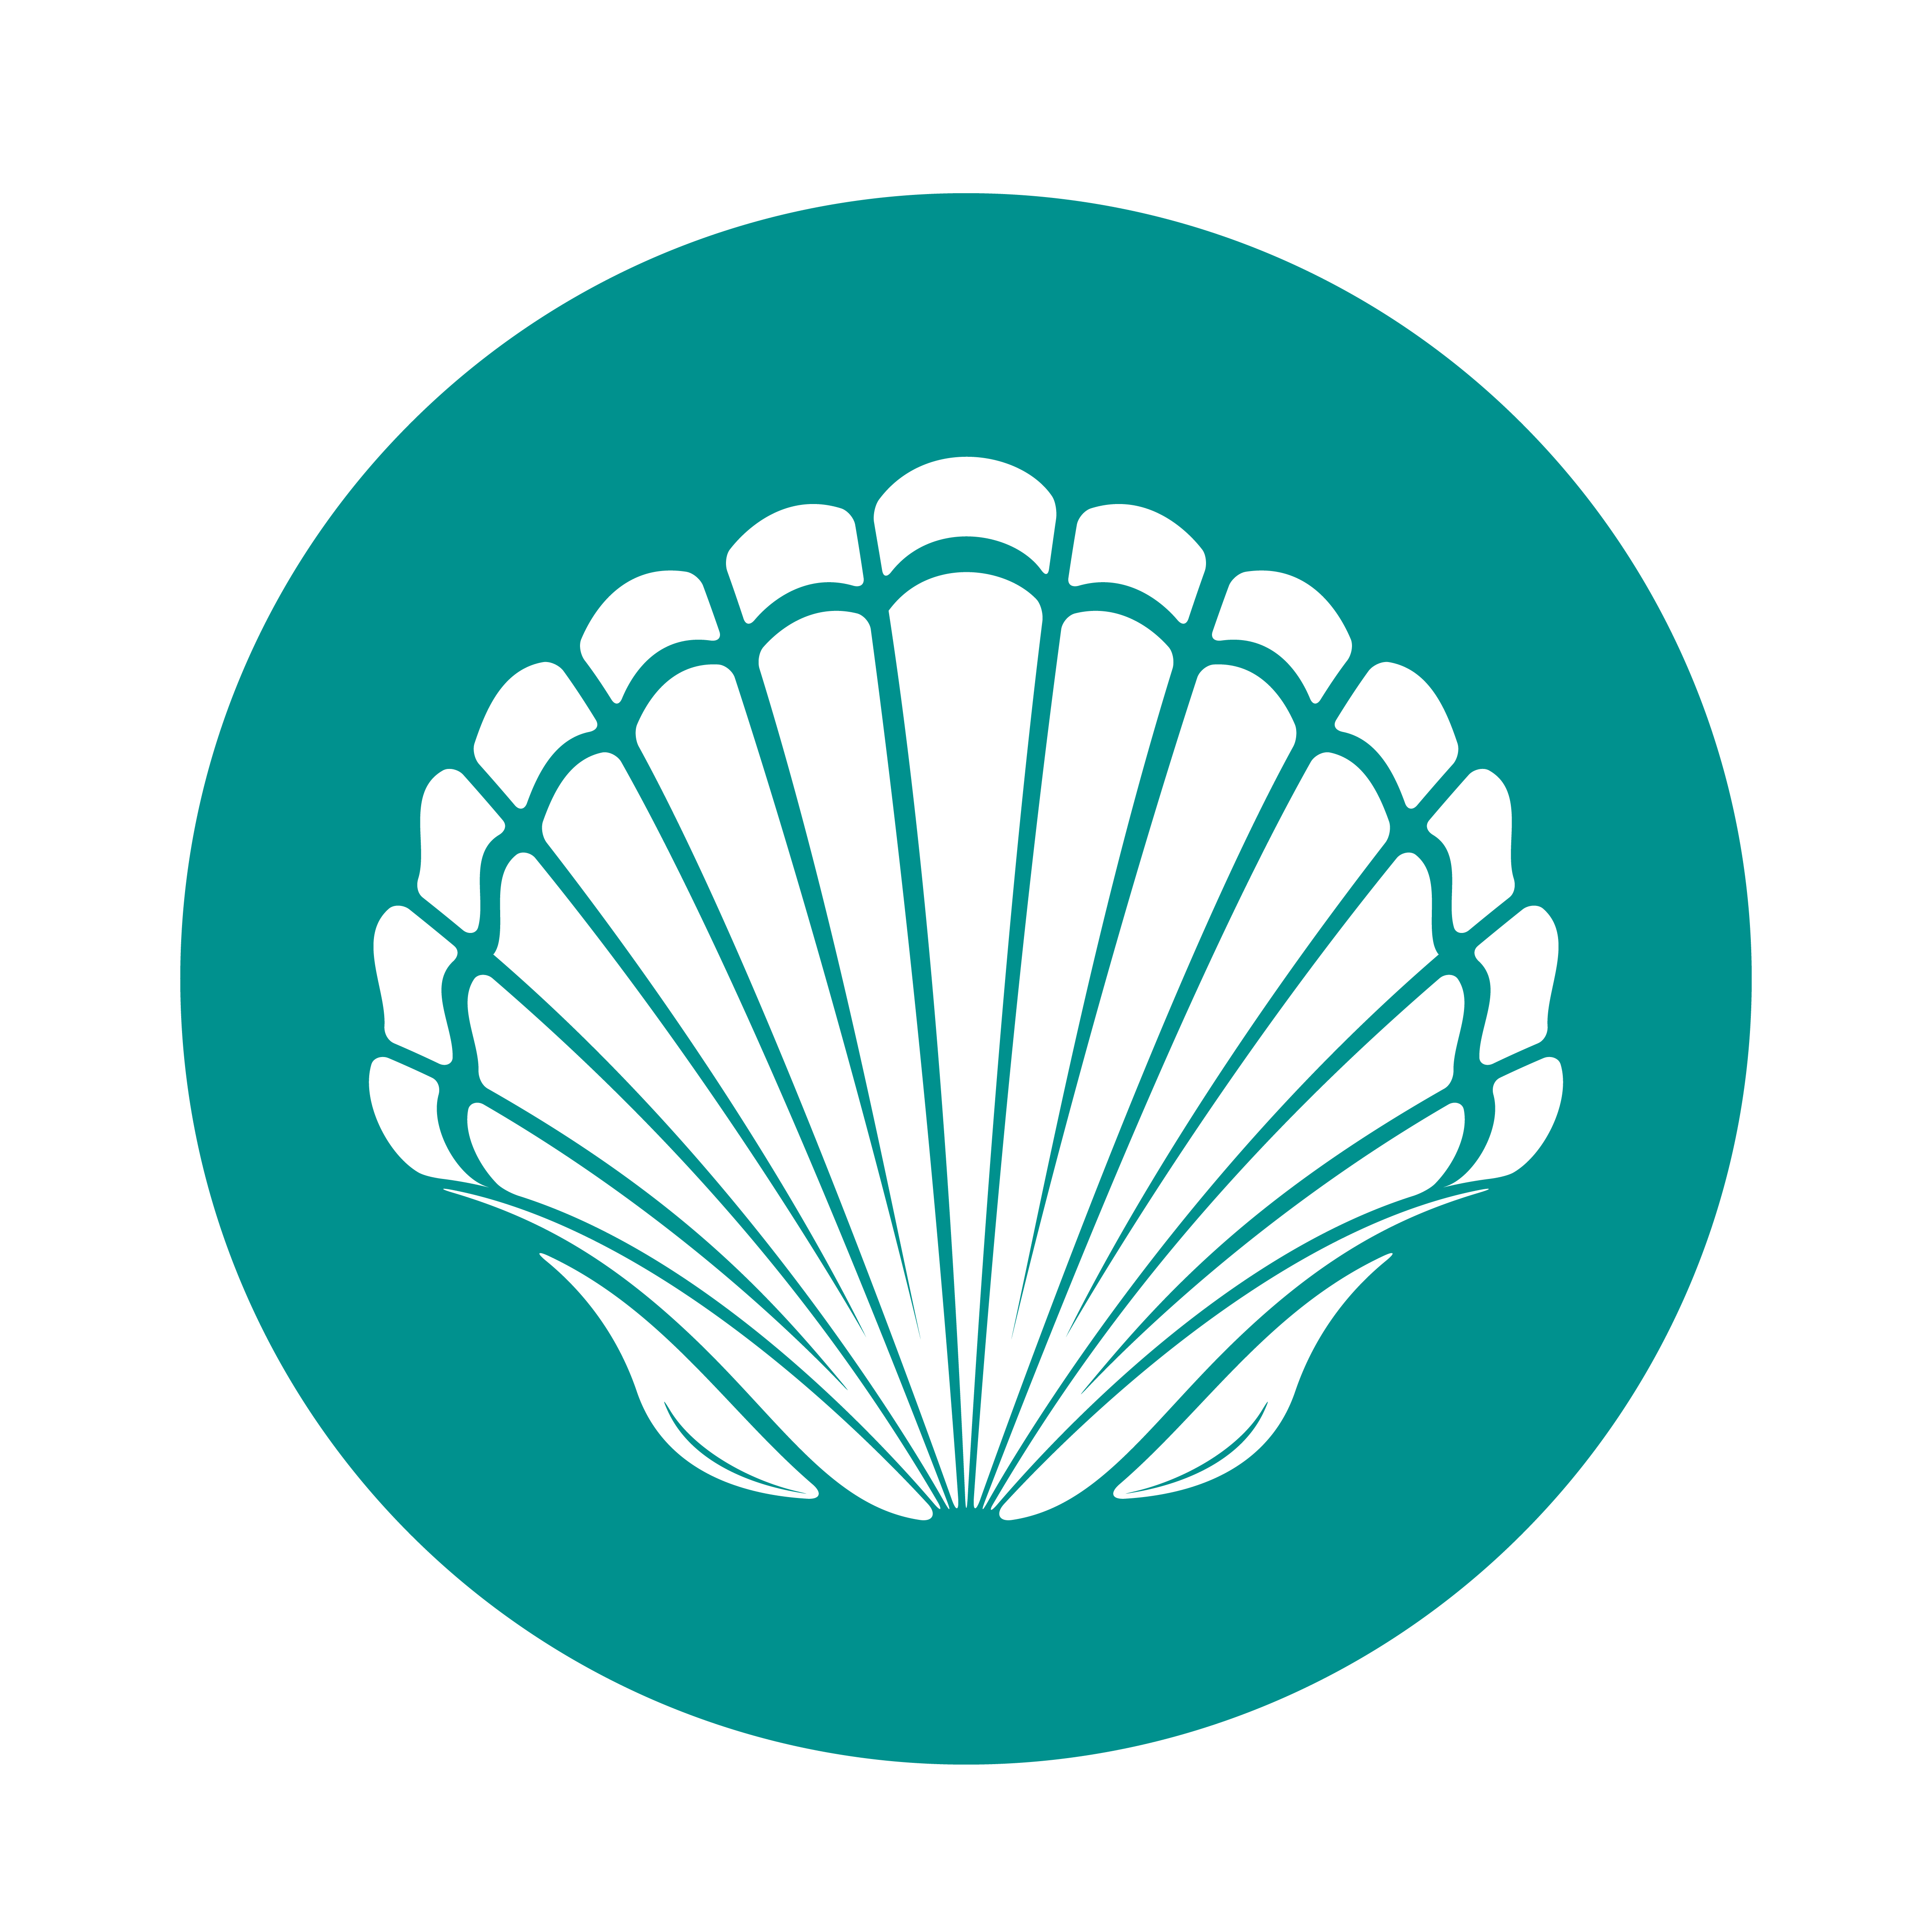 Scallop Shell Free Vector Art.